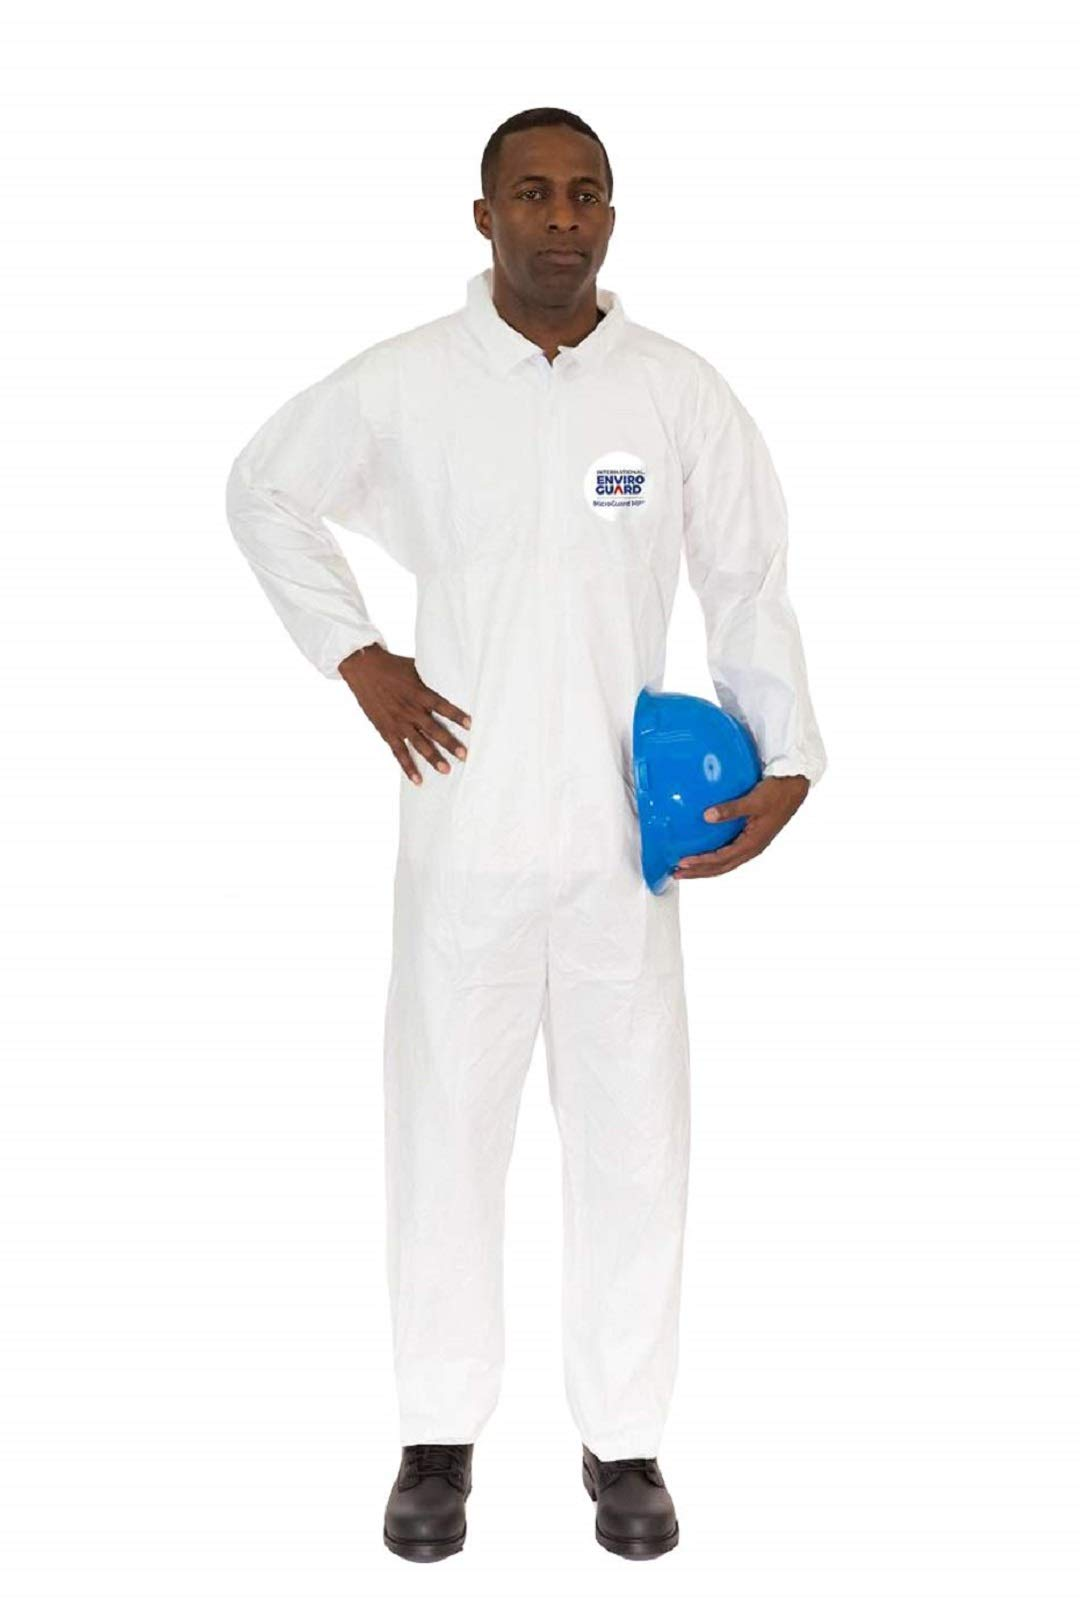 Microguard MP Microporous (White) | Particulate & Splash Protection/Disposable Hazmat Suit with Elastic Sleeves for Paint and Particulates (Case of 25) (5XL, Elastic Wrist & Ankle) by Microguard MP